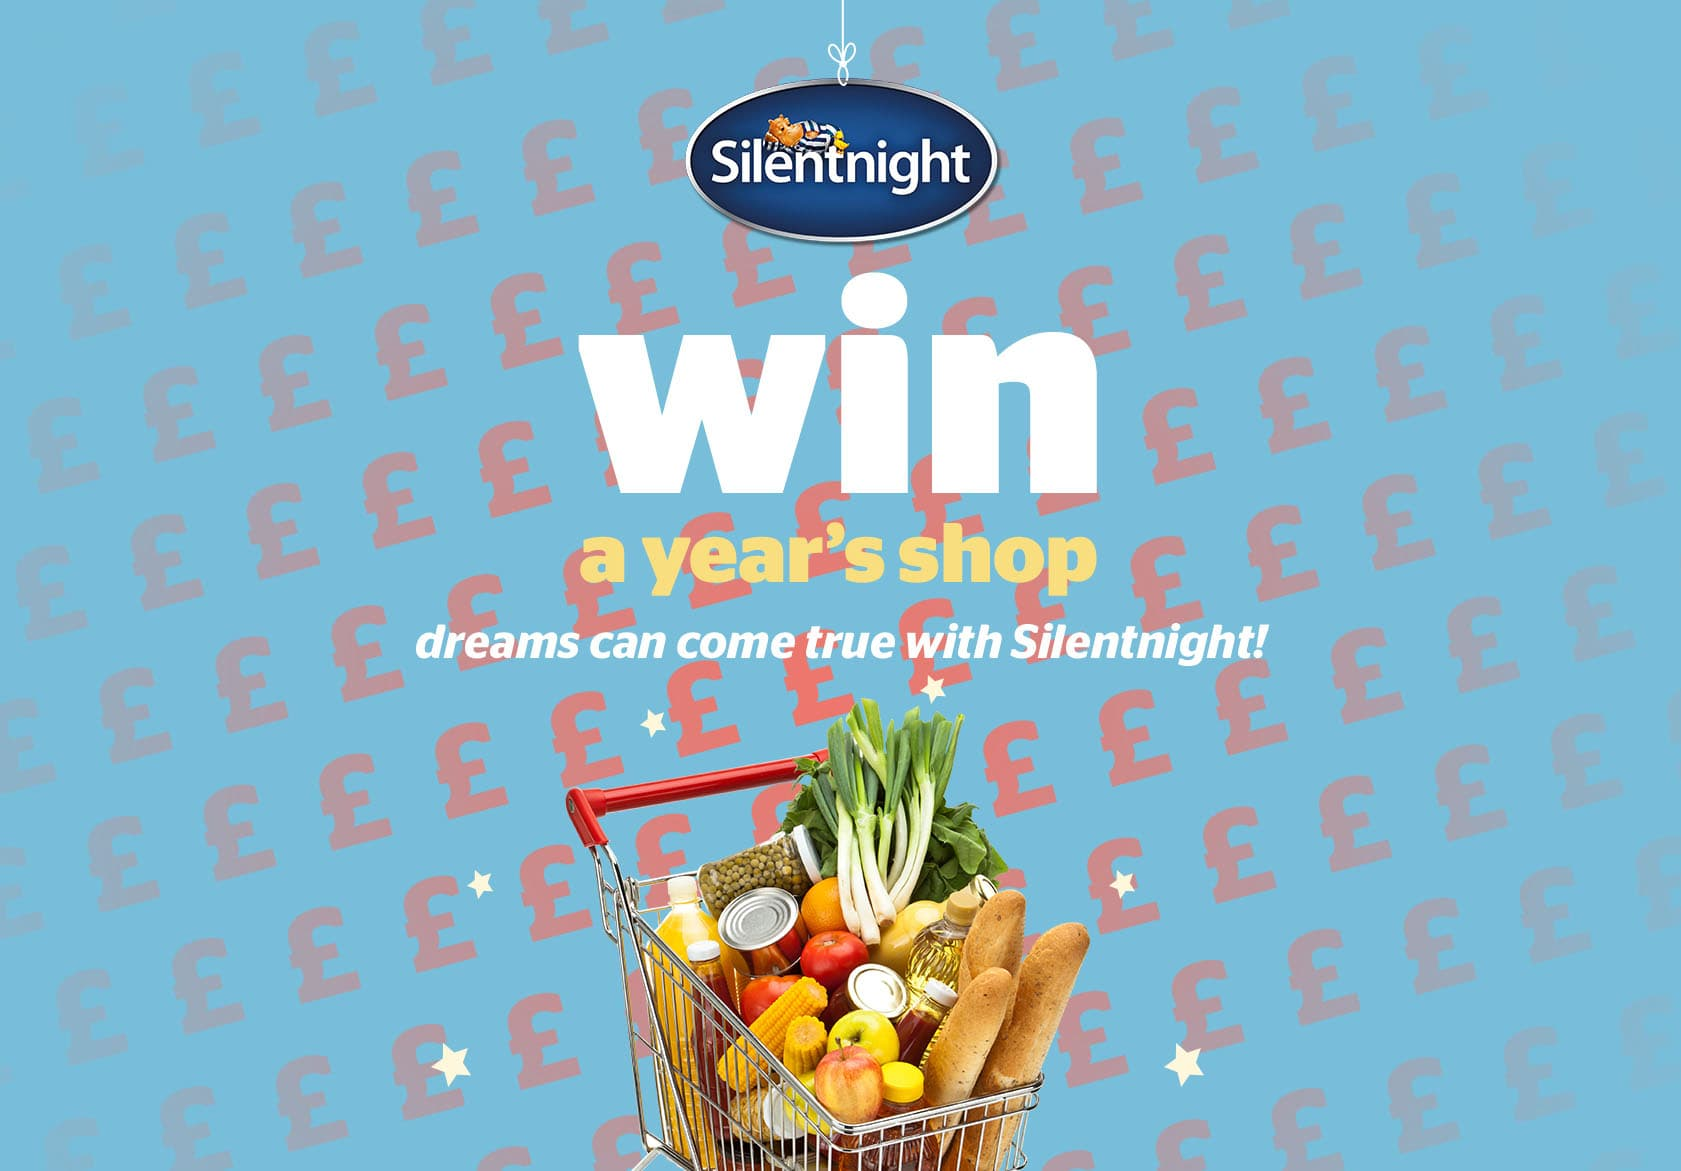 Win a years shop, dreams can come big with Silentnight